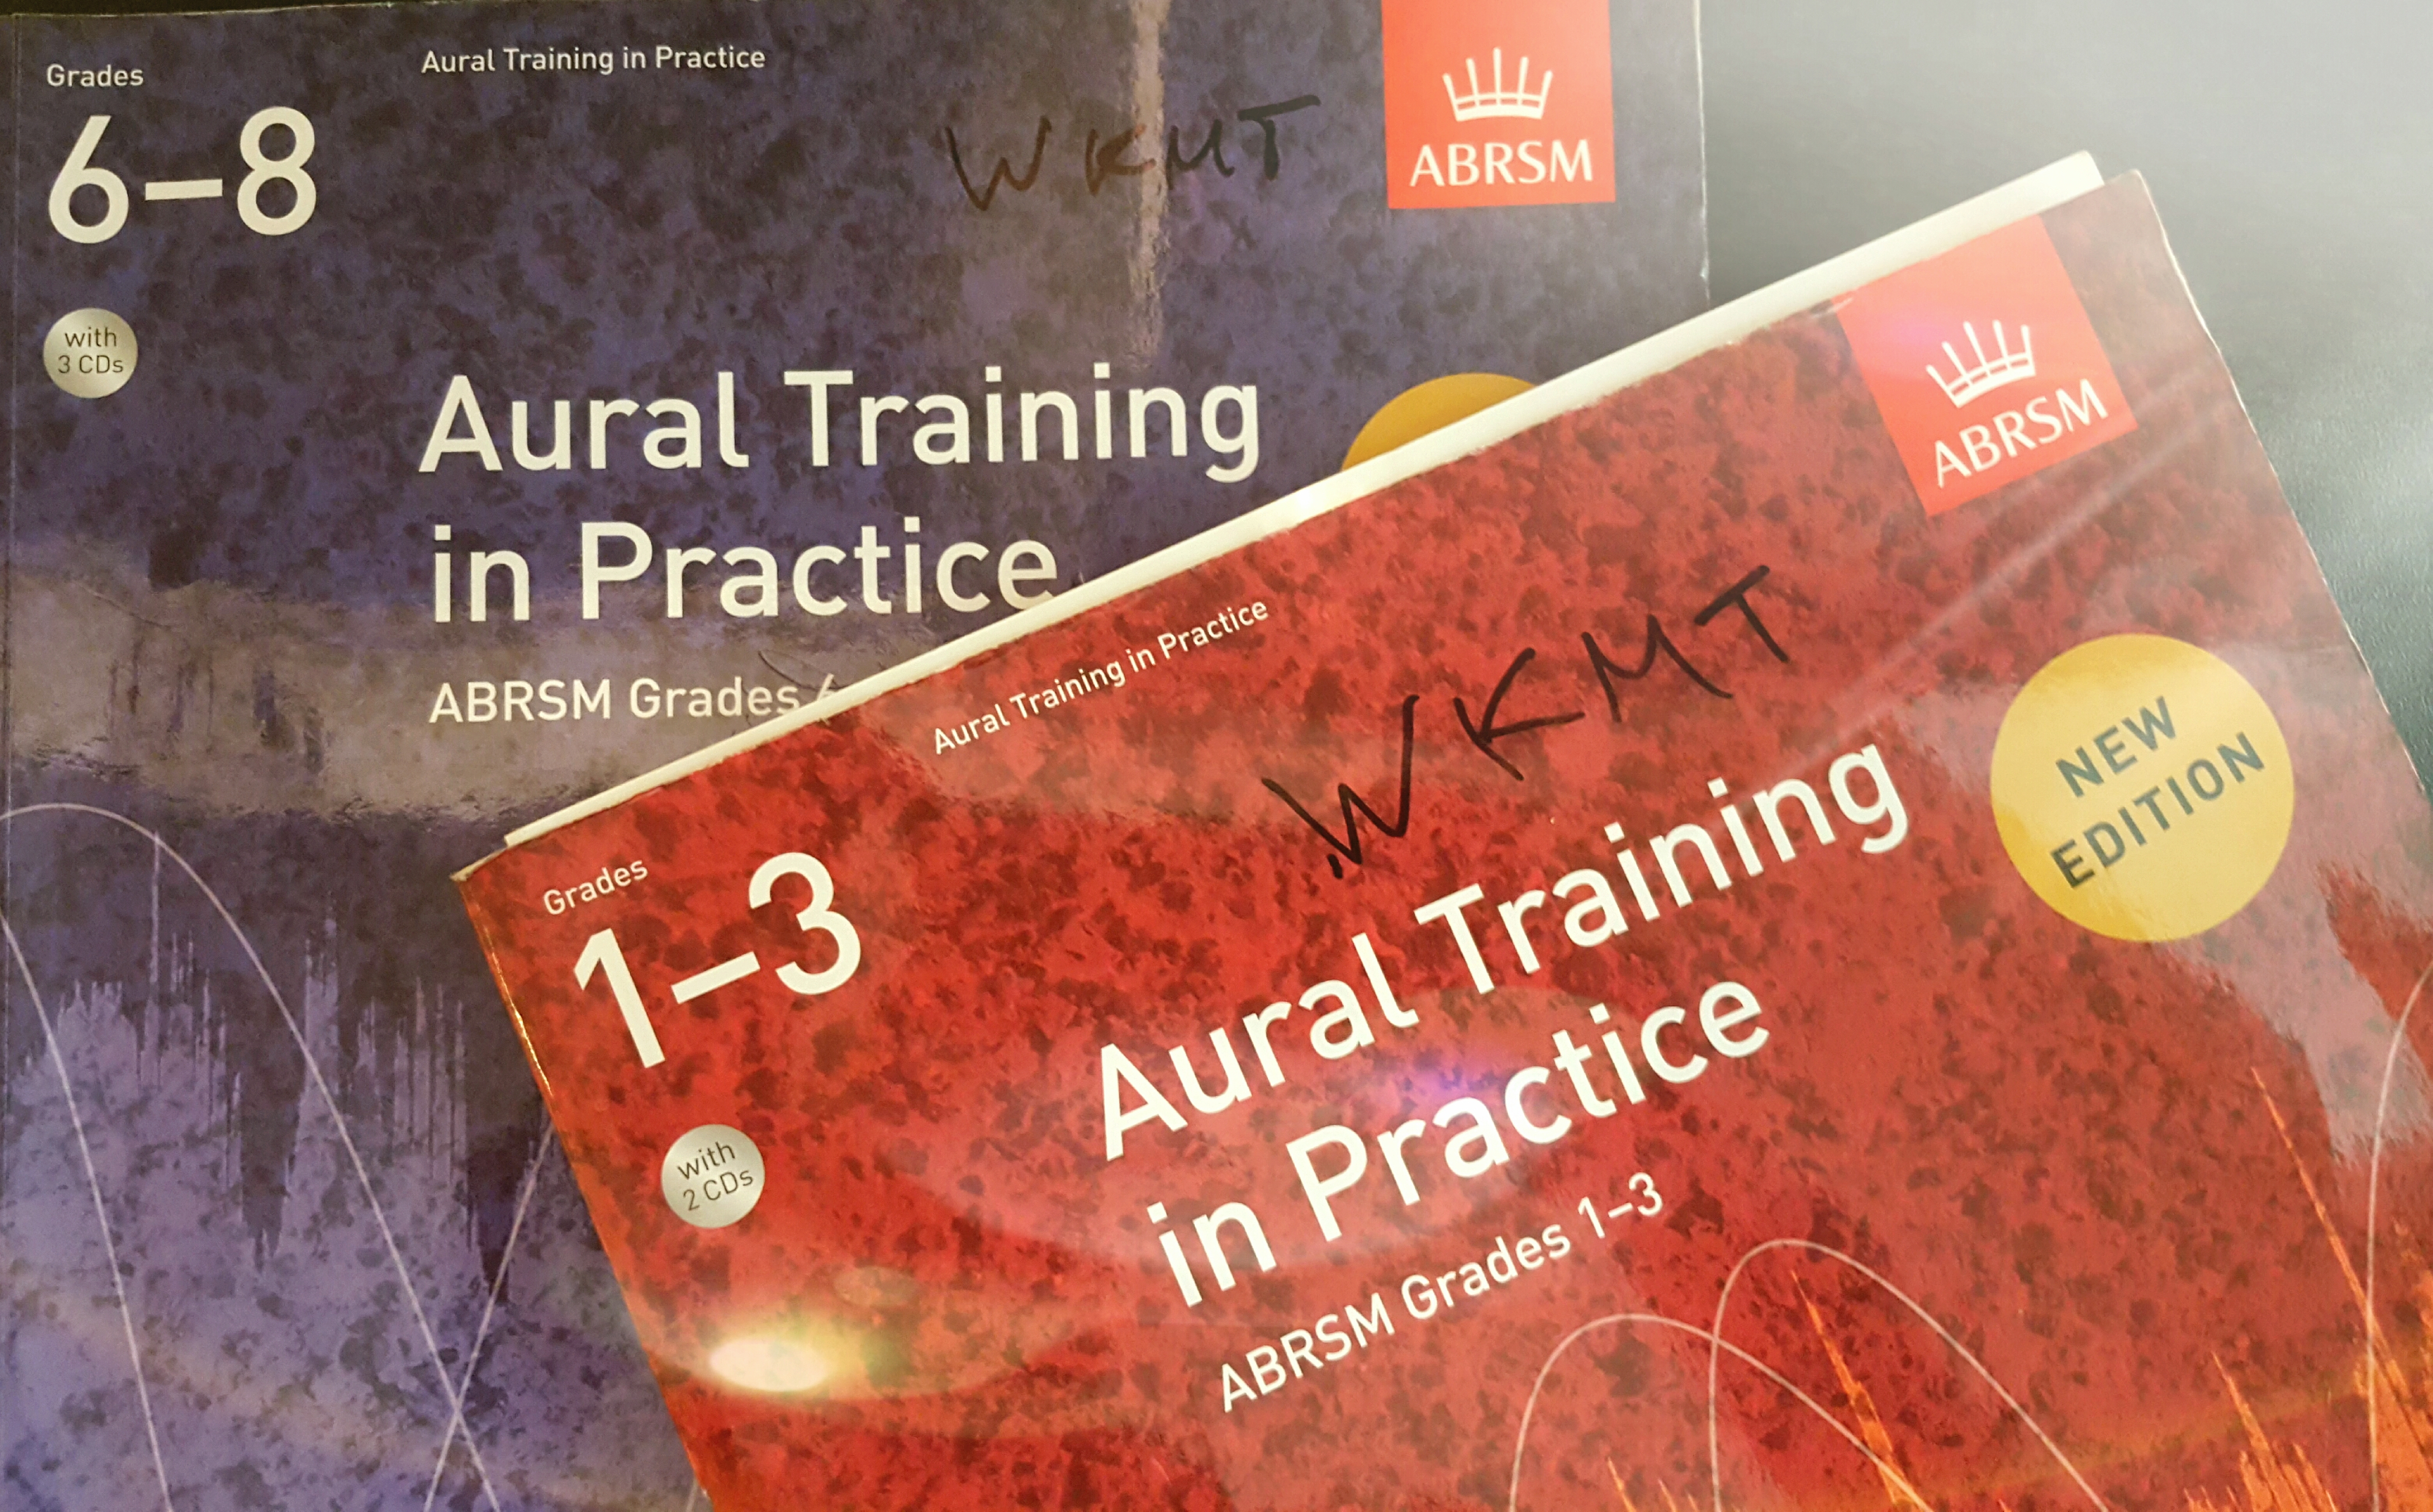 255d68 7d8ce4c8dfd74cdfad9c7d8c7940dcd1~mv2 d 4166 2589 s 4 2 Are you preparing any ABRSM Exam? Keep an eye on the Aural Test.